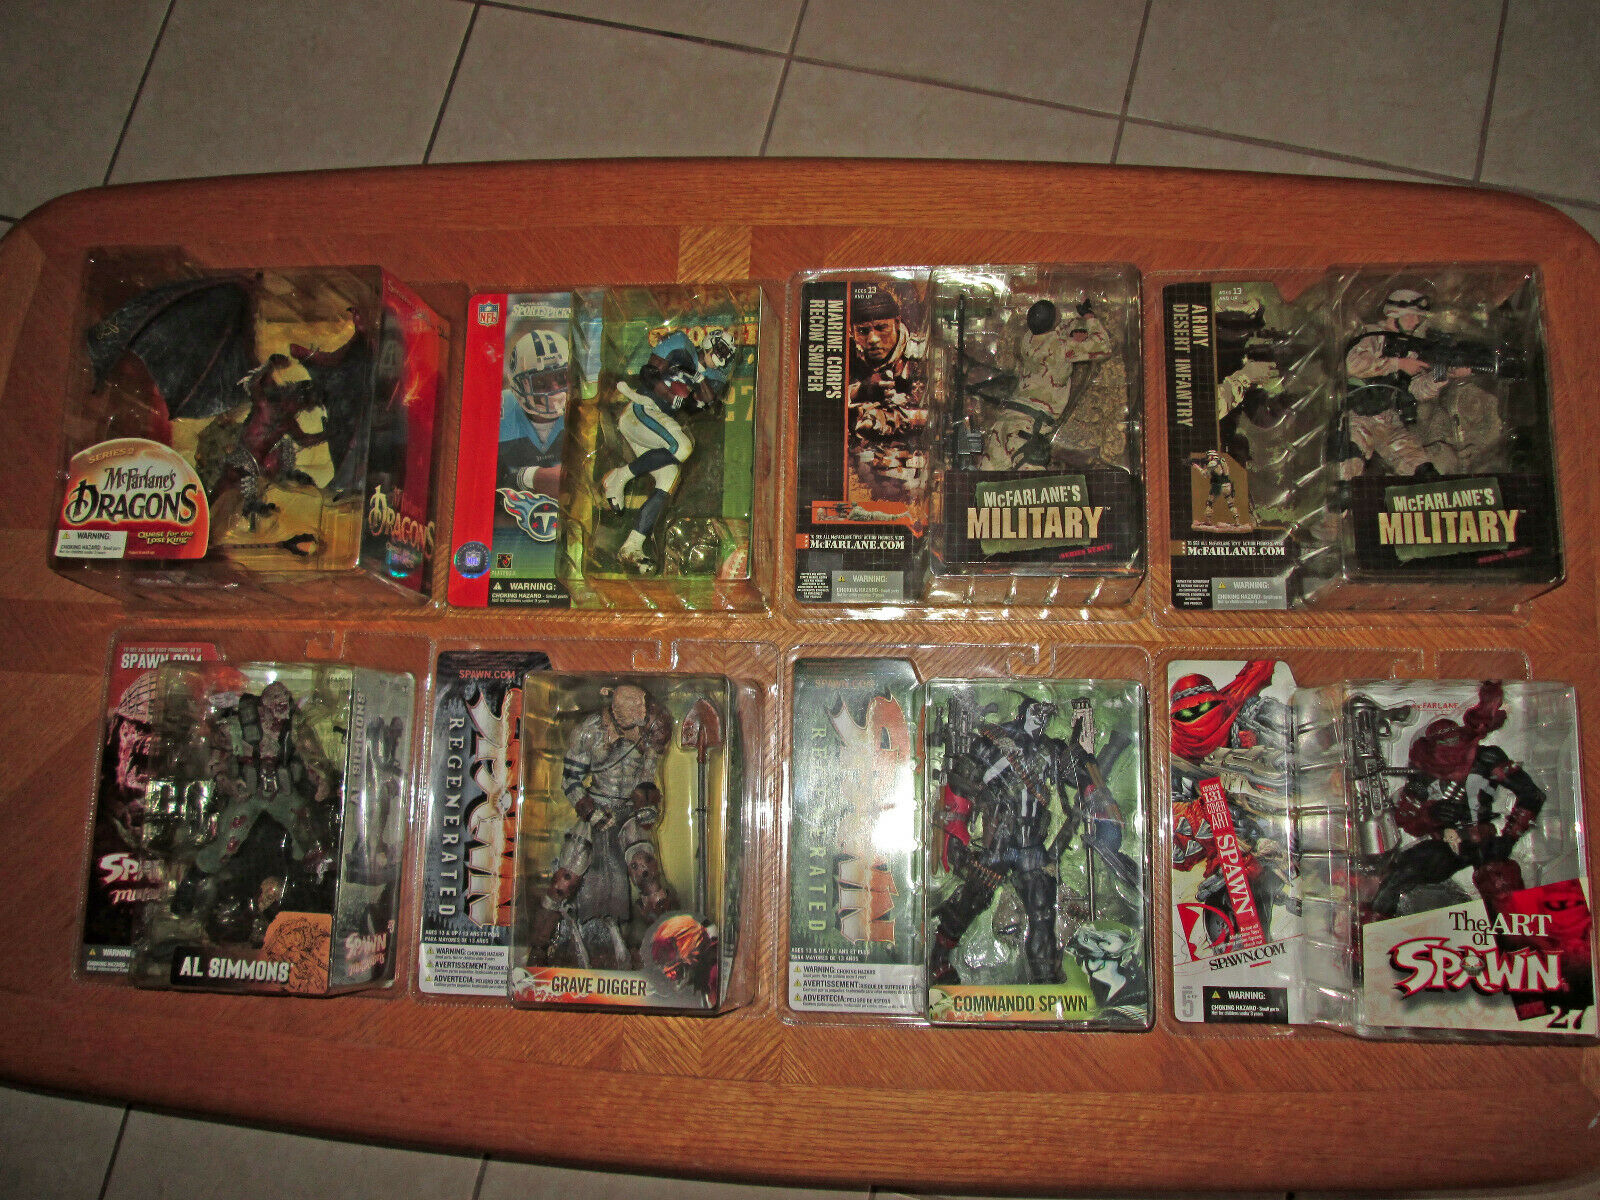 McFarlane Action Figures Figures Figures Lot (Spawn, Military, NFL, Dragons) c61925